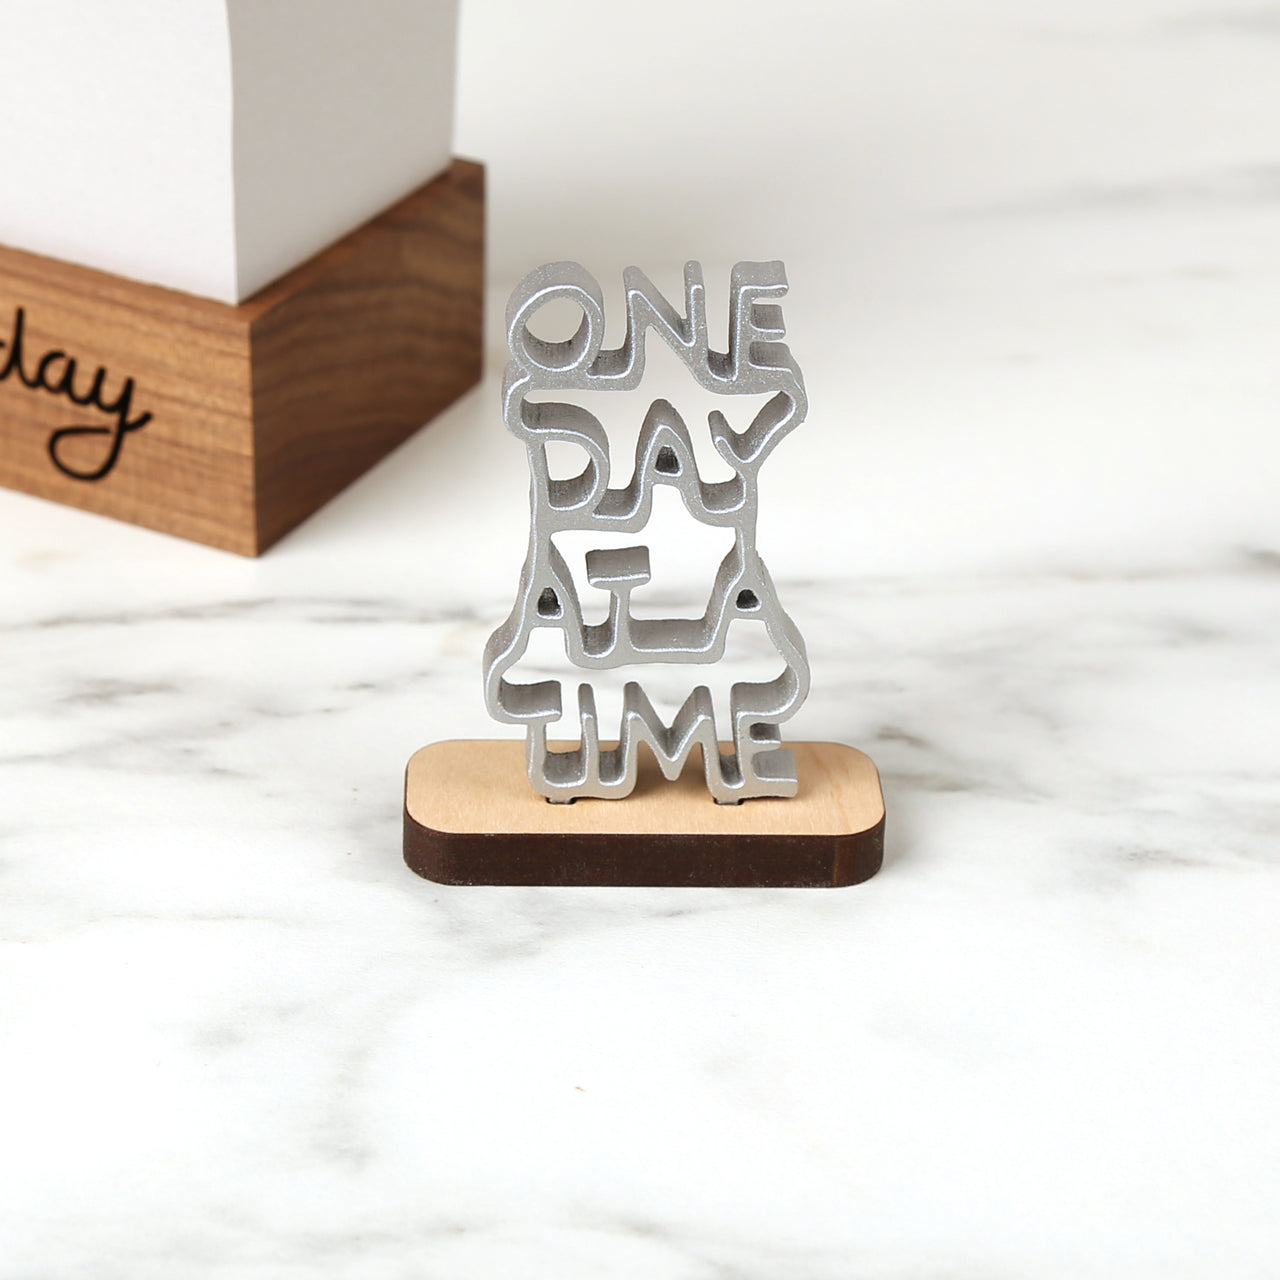 One Day At A Time - Mini Sculpture